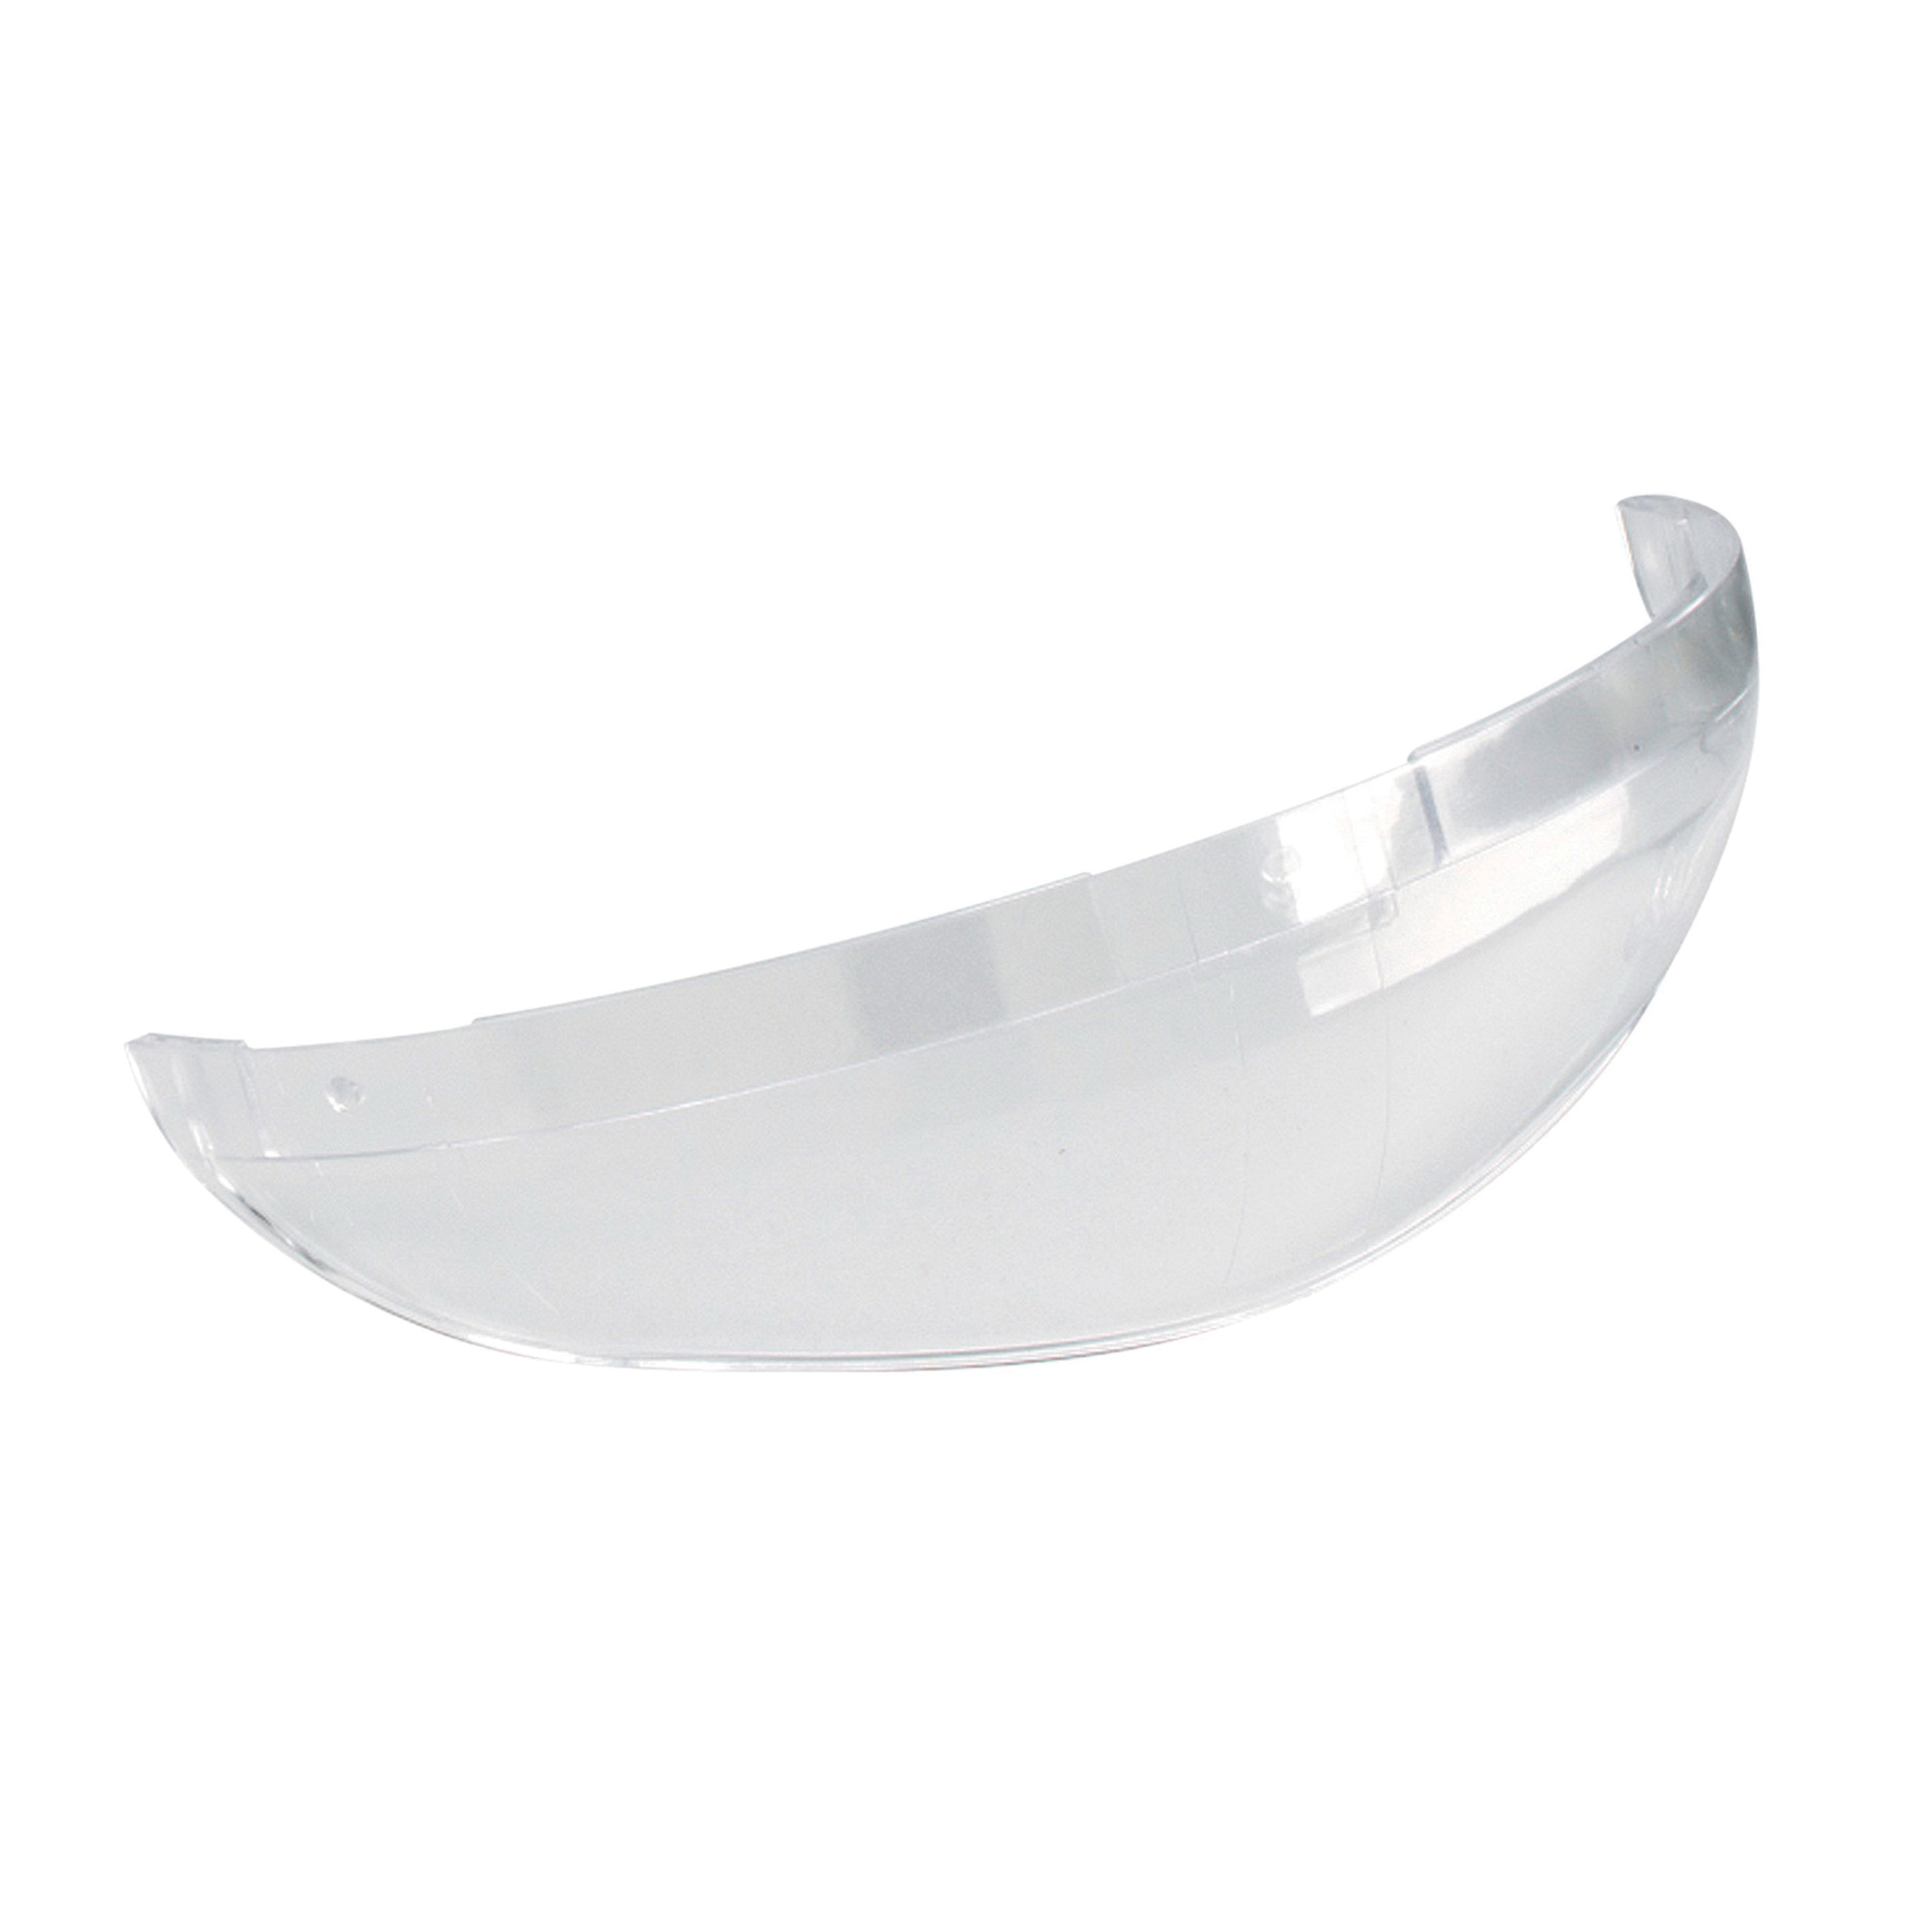 3M™ 078371-82520 Universal Faceshield Holder, For Use With 3M™ Faceshields, H24M Hard Hat, Thermoplastic, ANSI Z87.1-2003